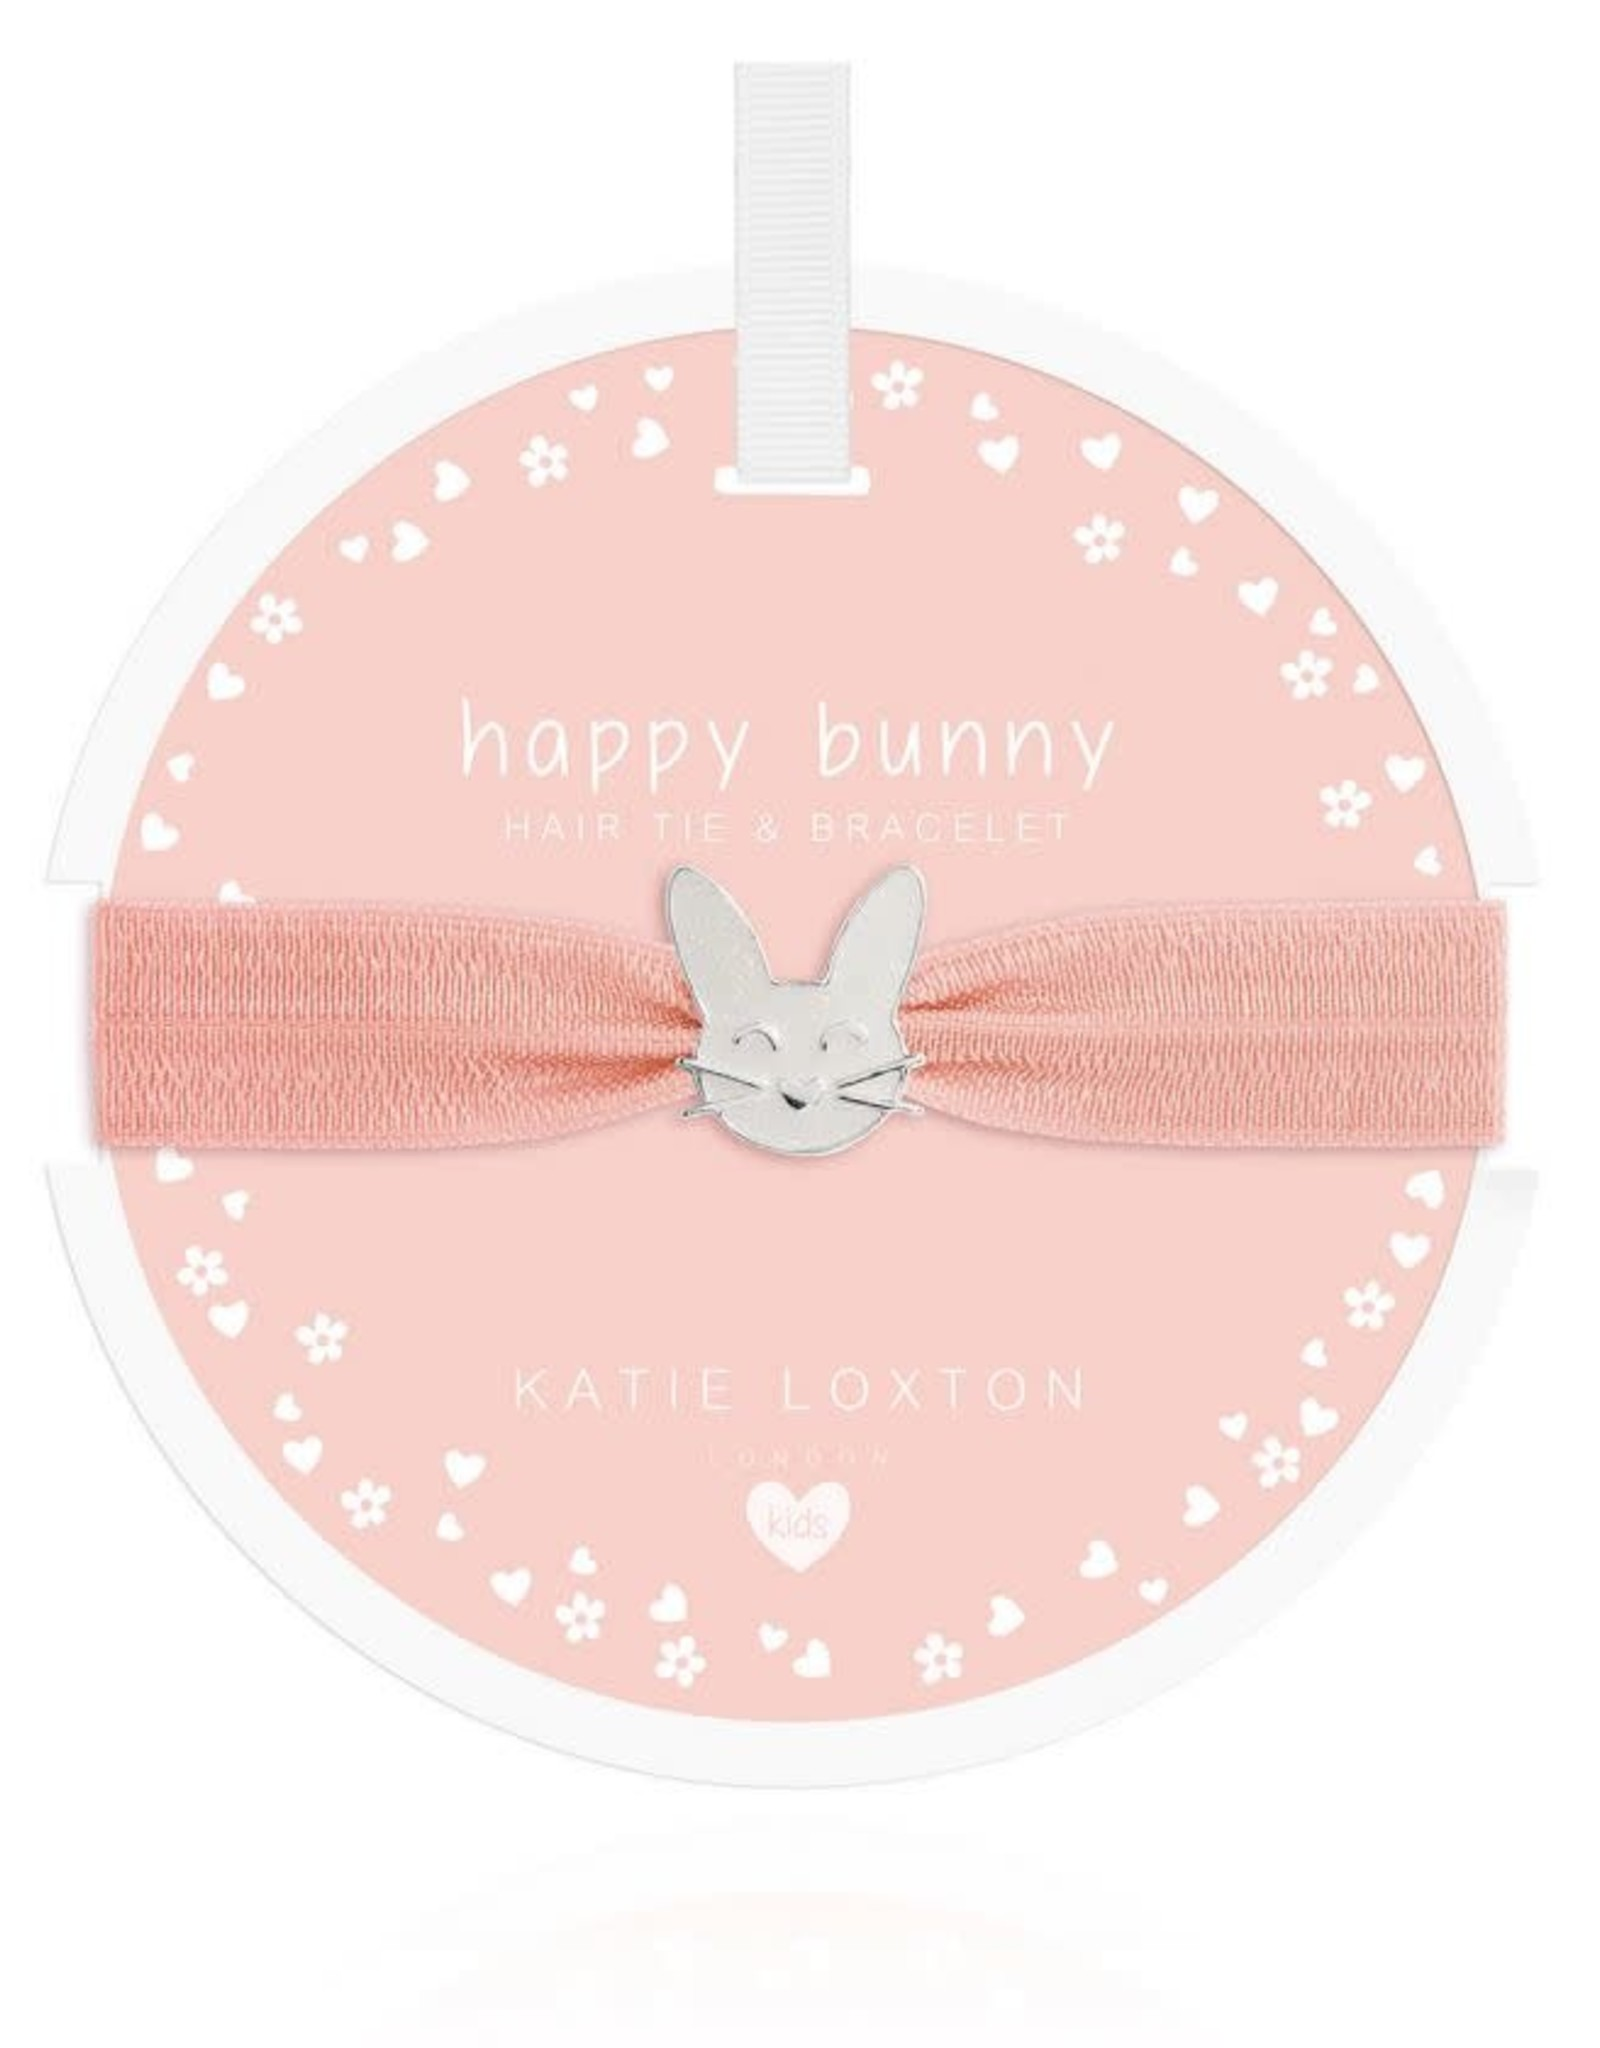 Katie Loxton Children's Hair Tie Bracelet Happy Bunny Pale Peach